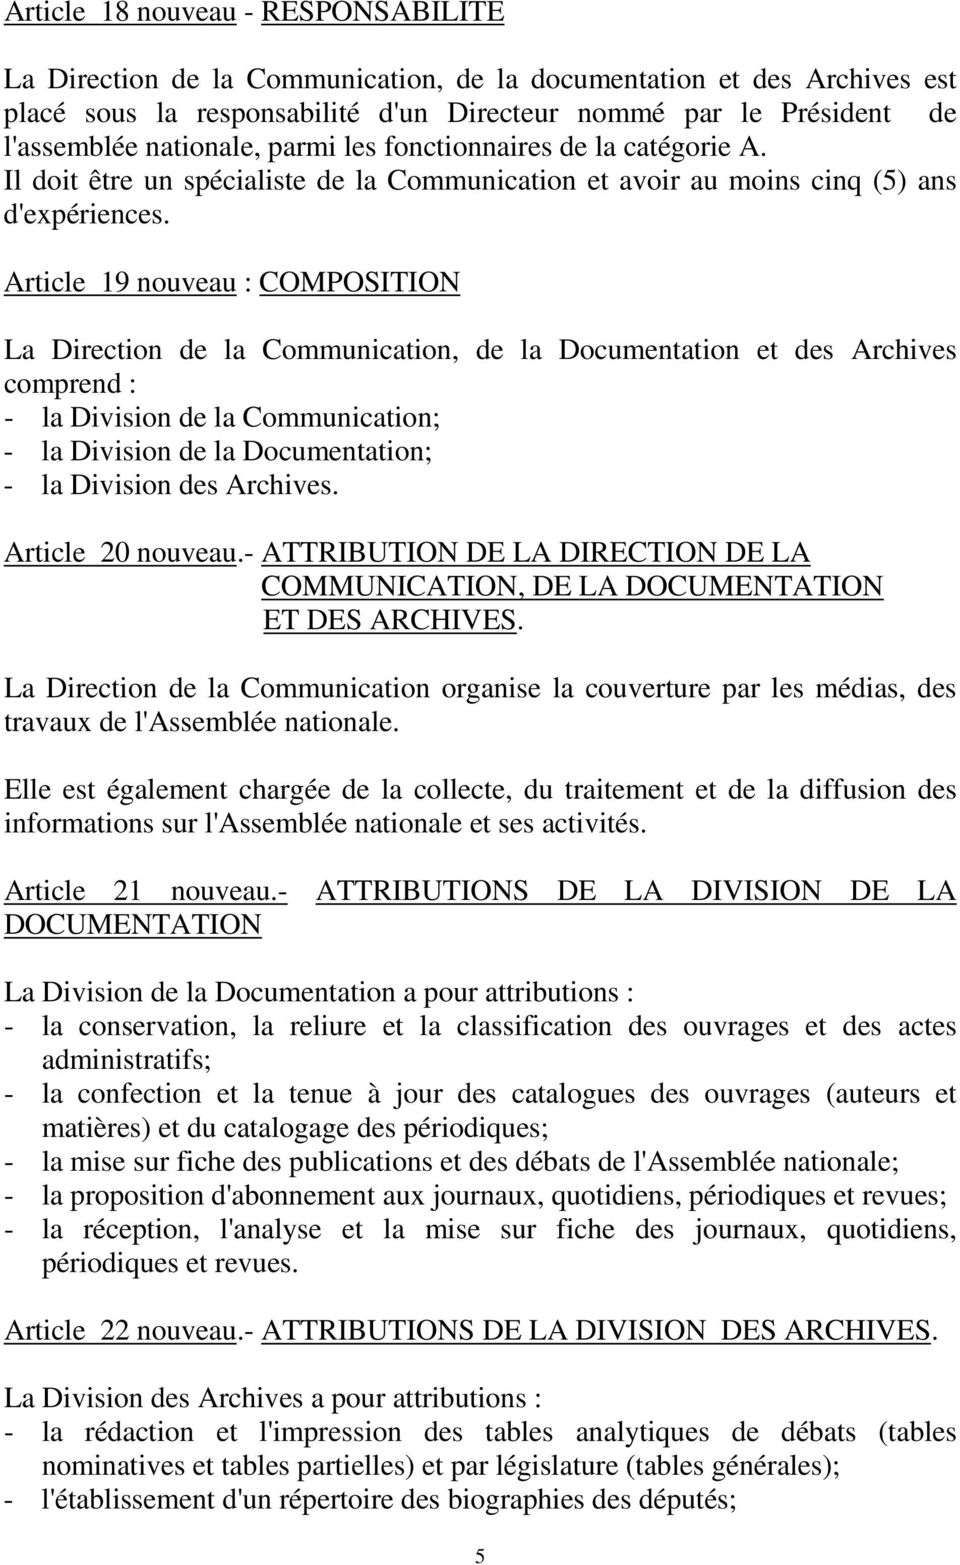 Article 19 nouveau : COMPOSITION La Direction de la Communication, de la Documentation et des Archives comprend : - la Division de la Communication; - la Division de la Documentation; - la Division